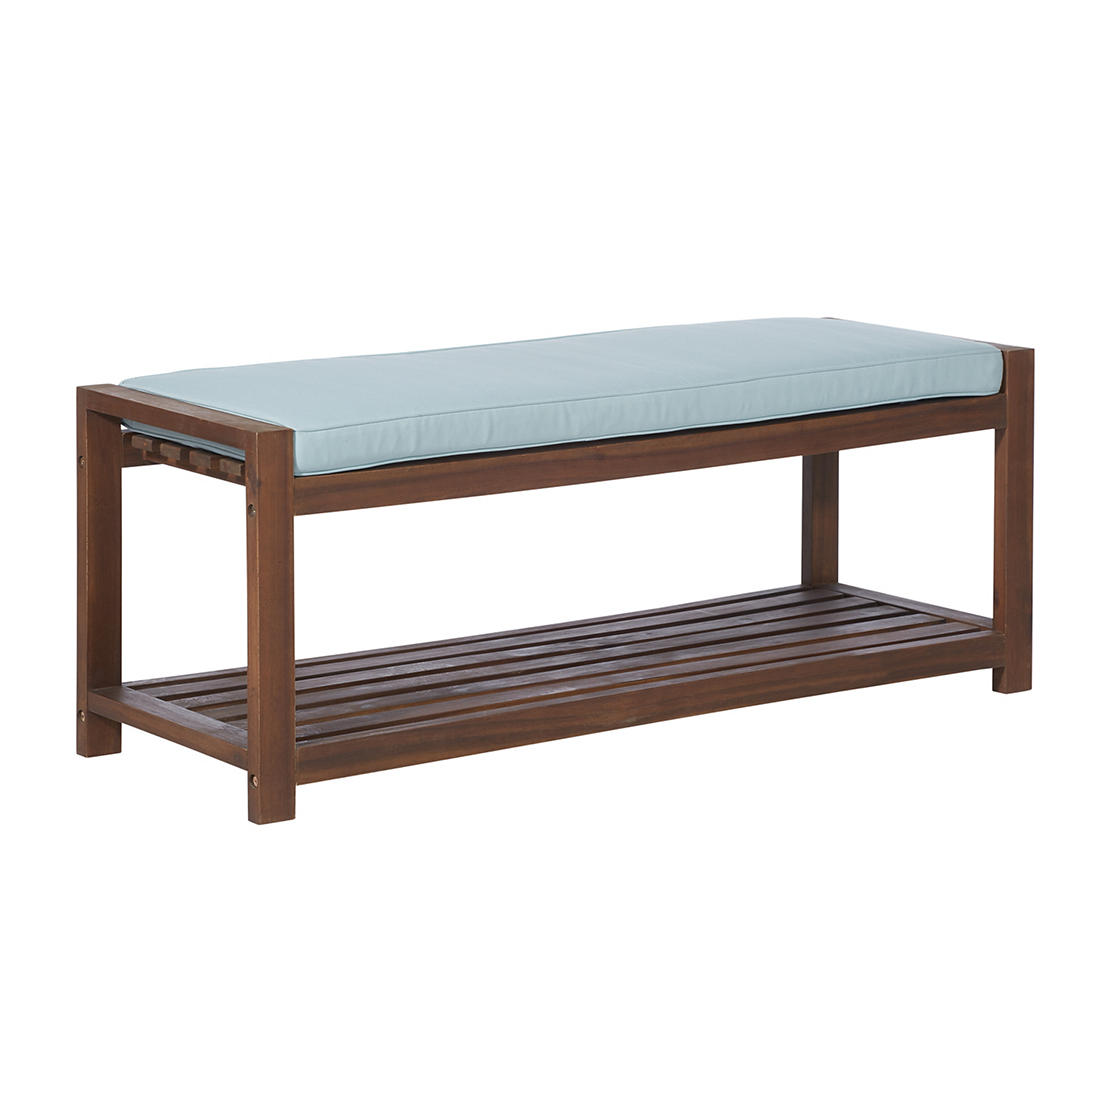 Enjoyable W Trends Outdoor Acacia Wood Storage Bench Natural Bjs Pdpeps Interior Chair Design Pdpepsorg